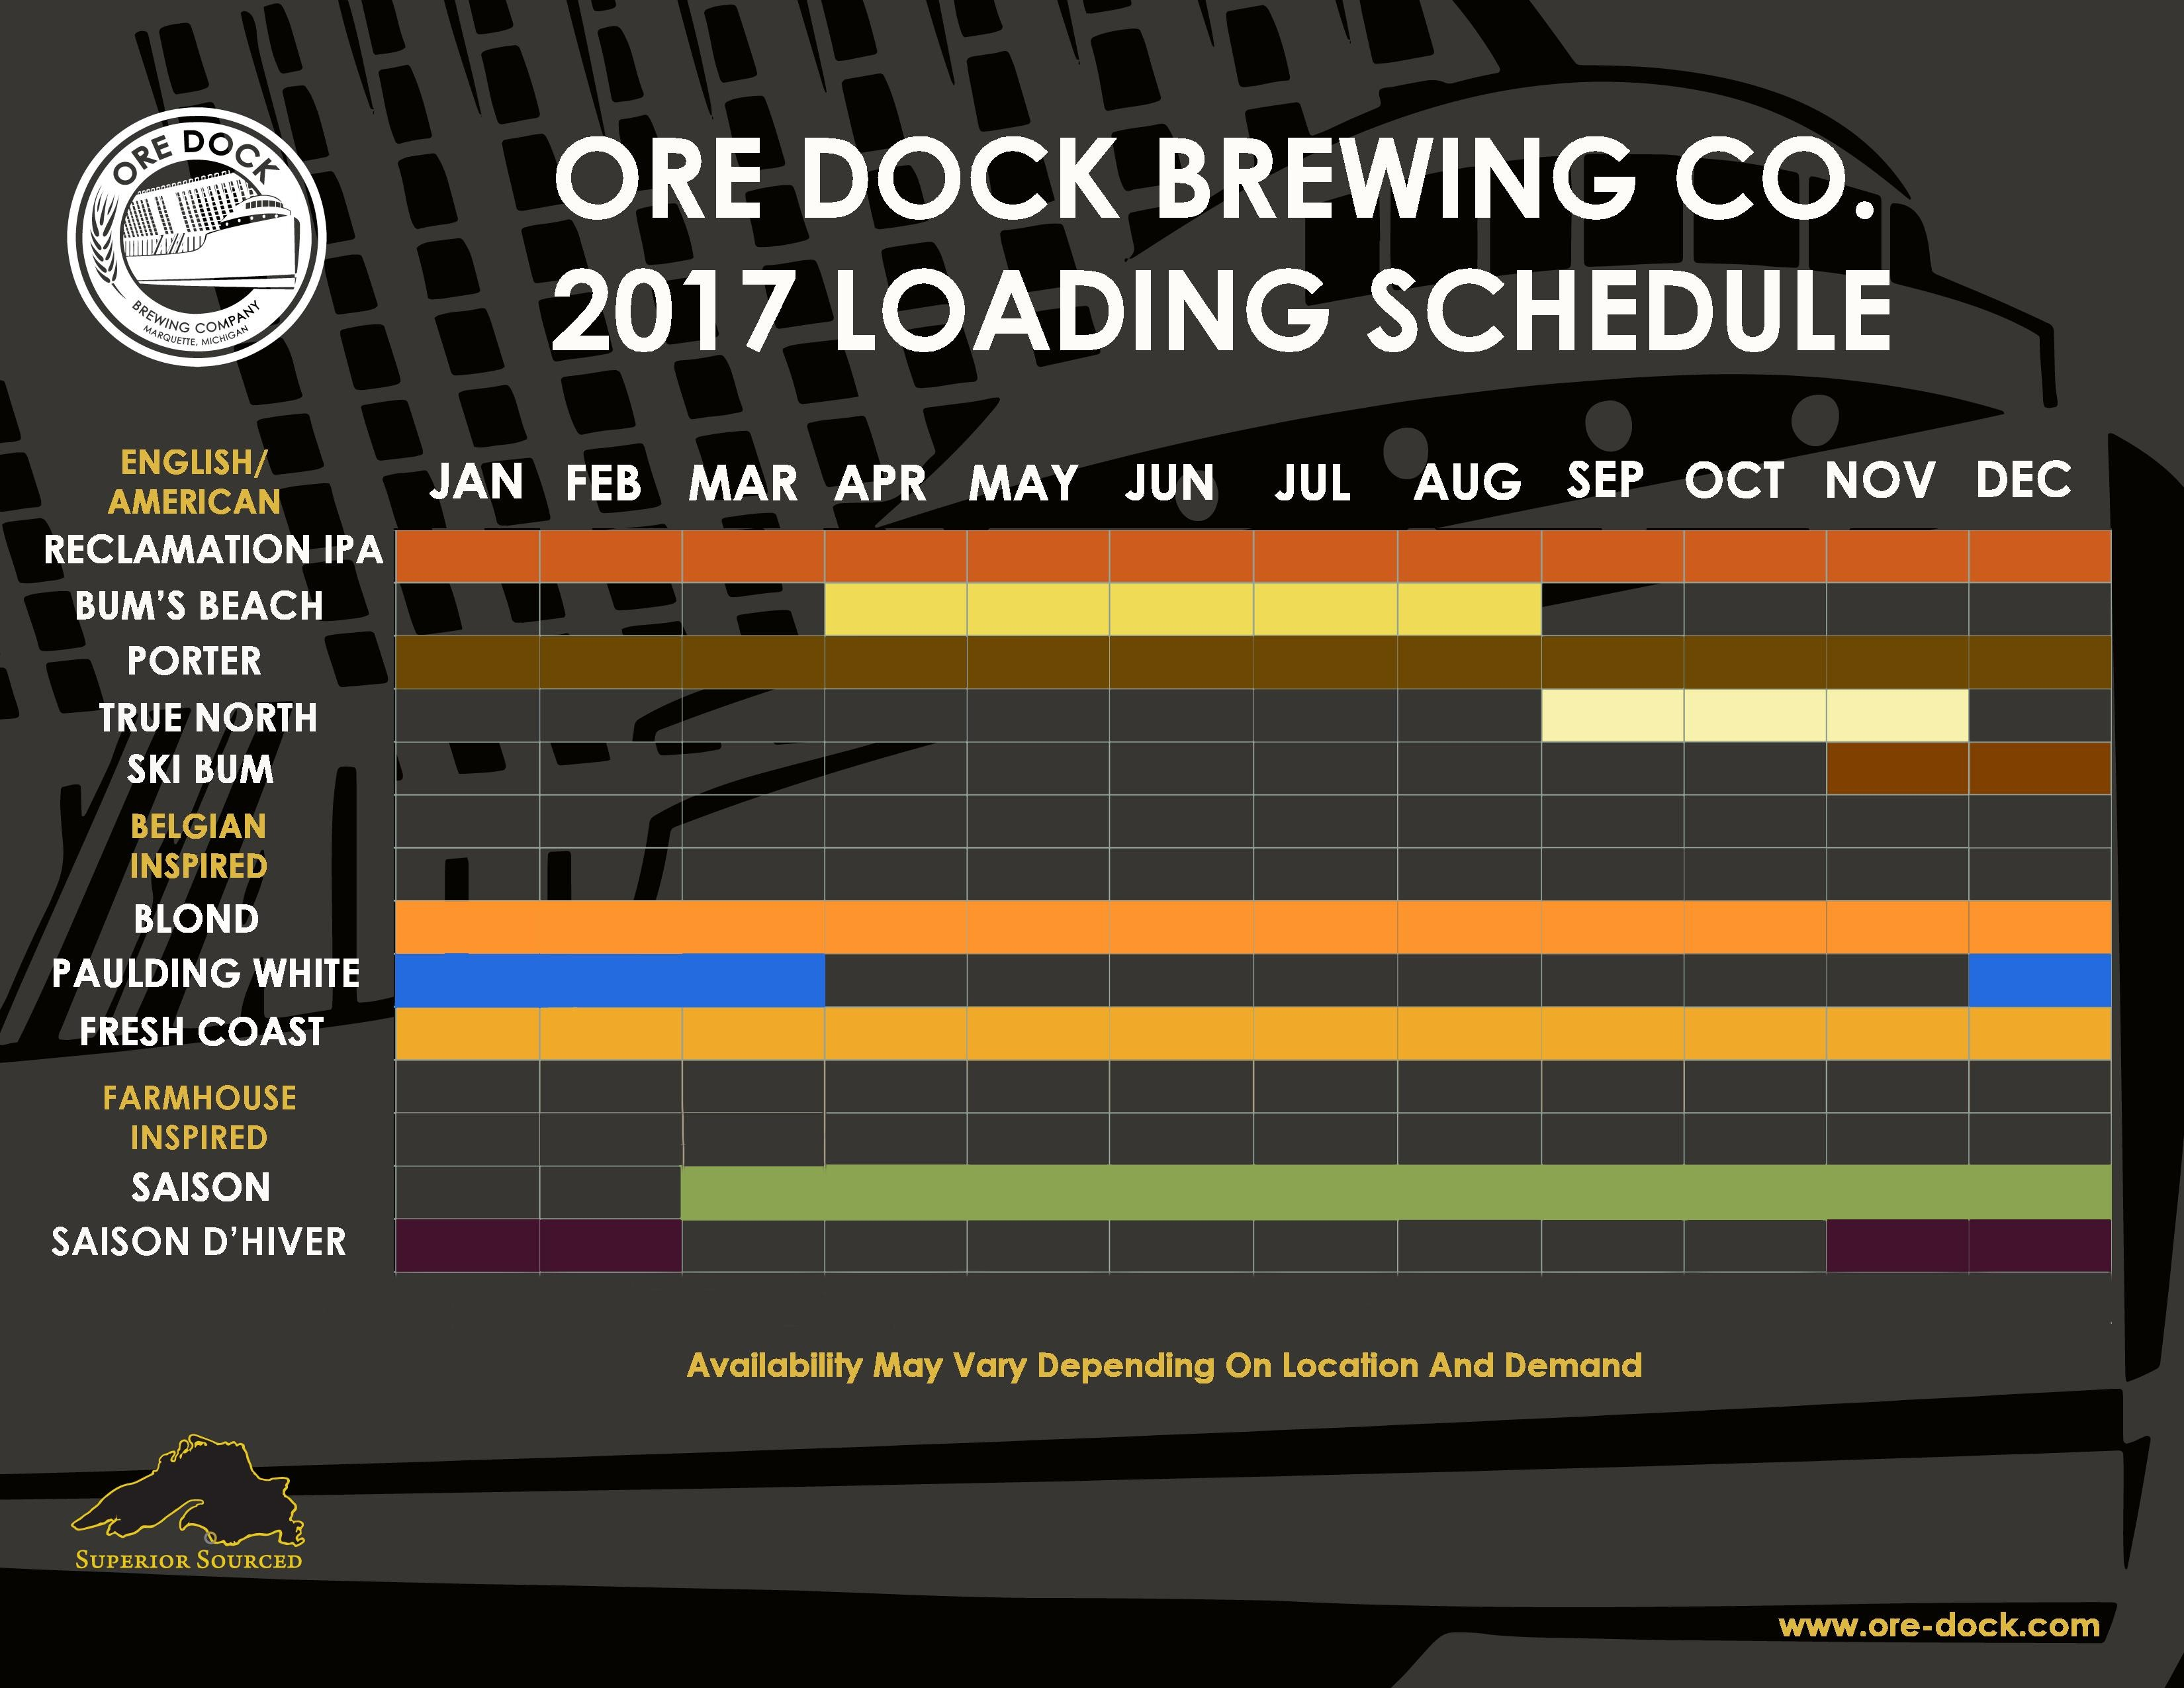 For distribution inquiries contact Adam Robarge at adam oredockbrewing pany